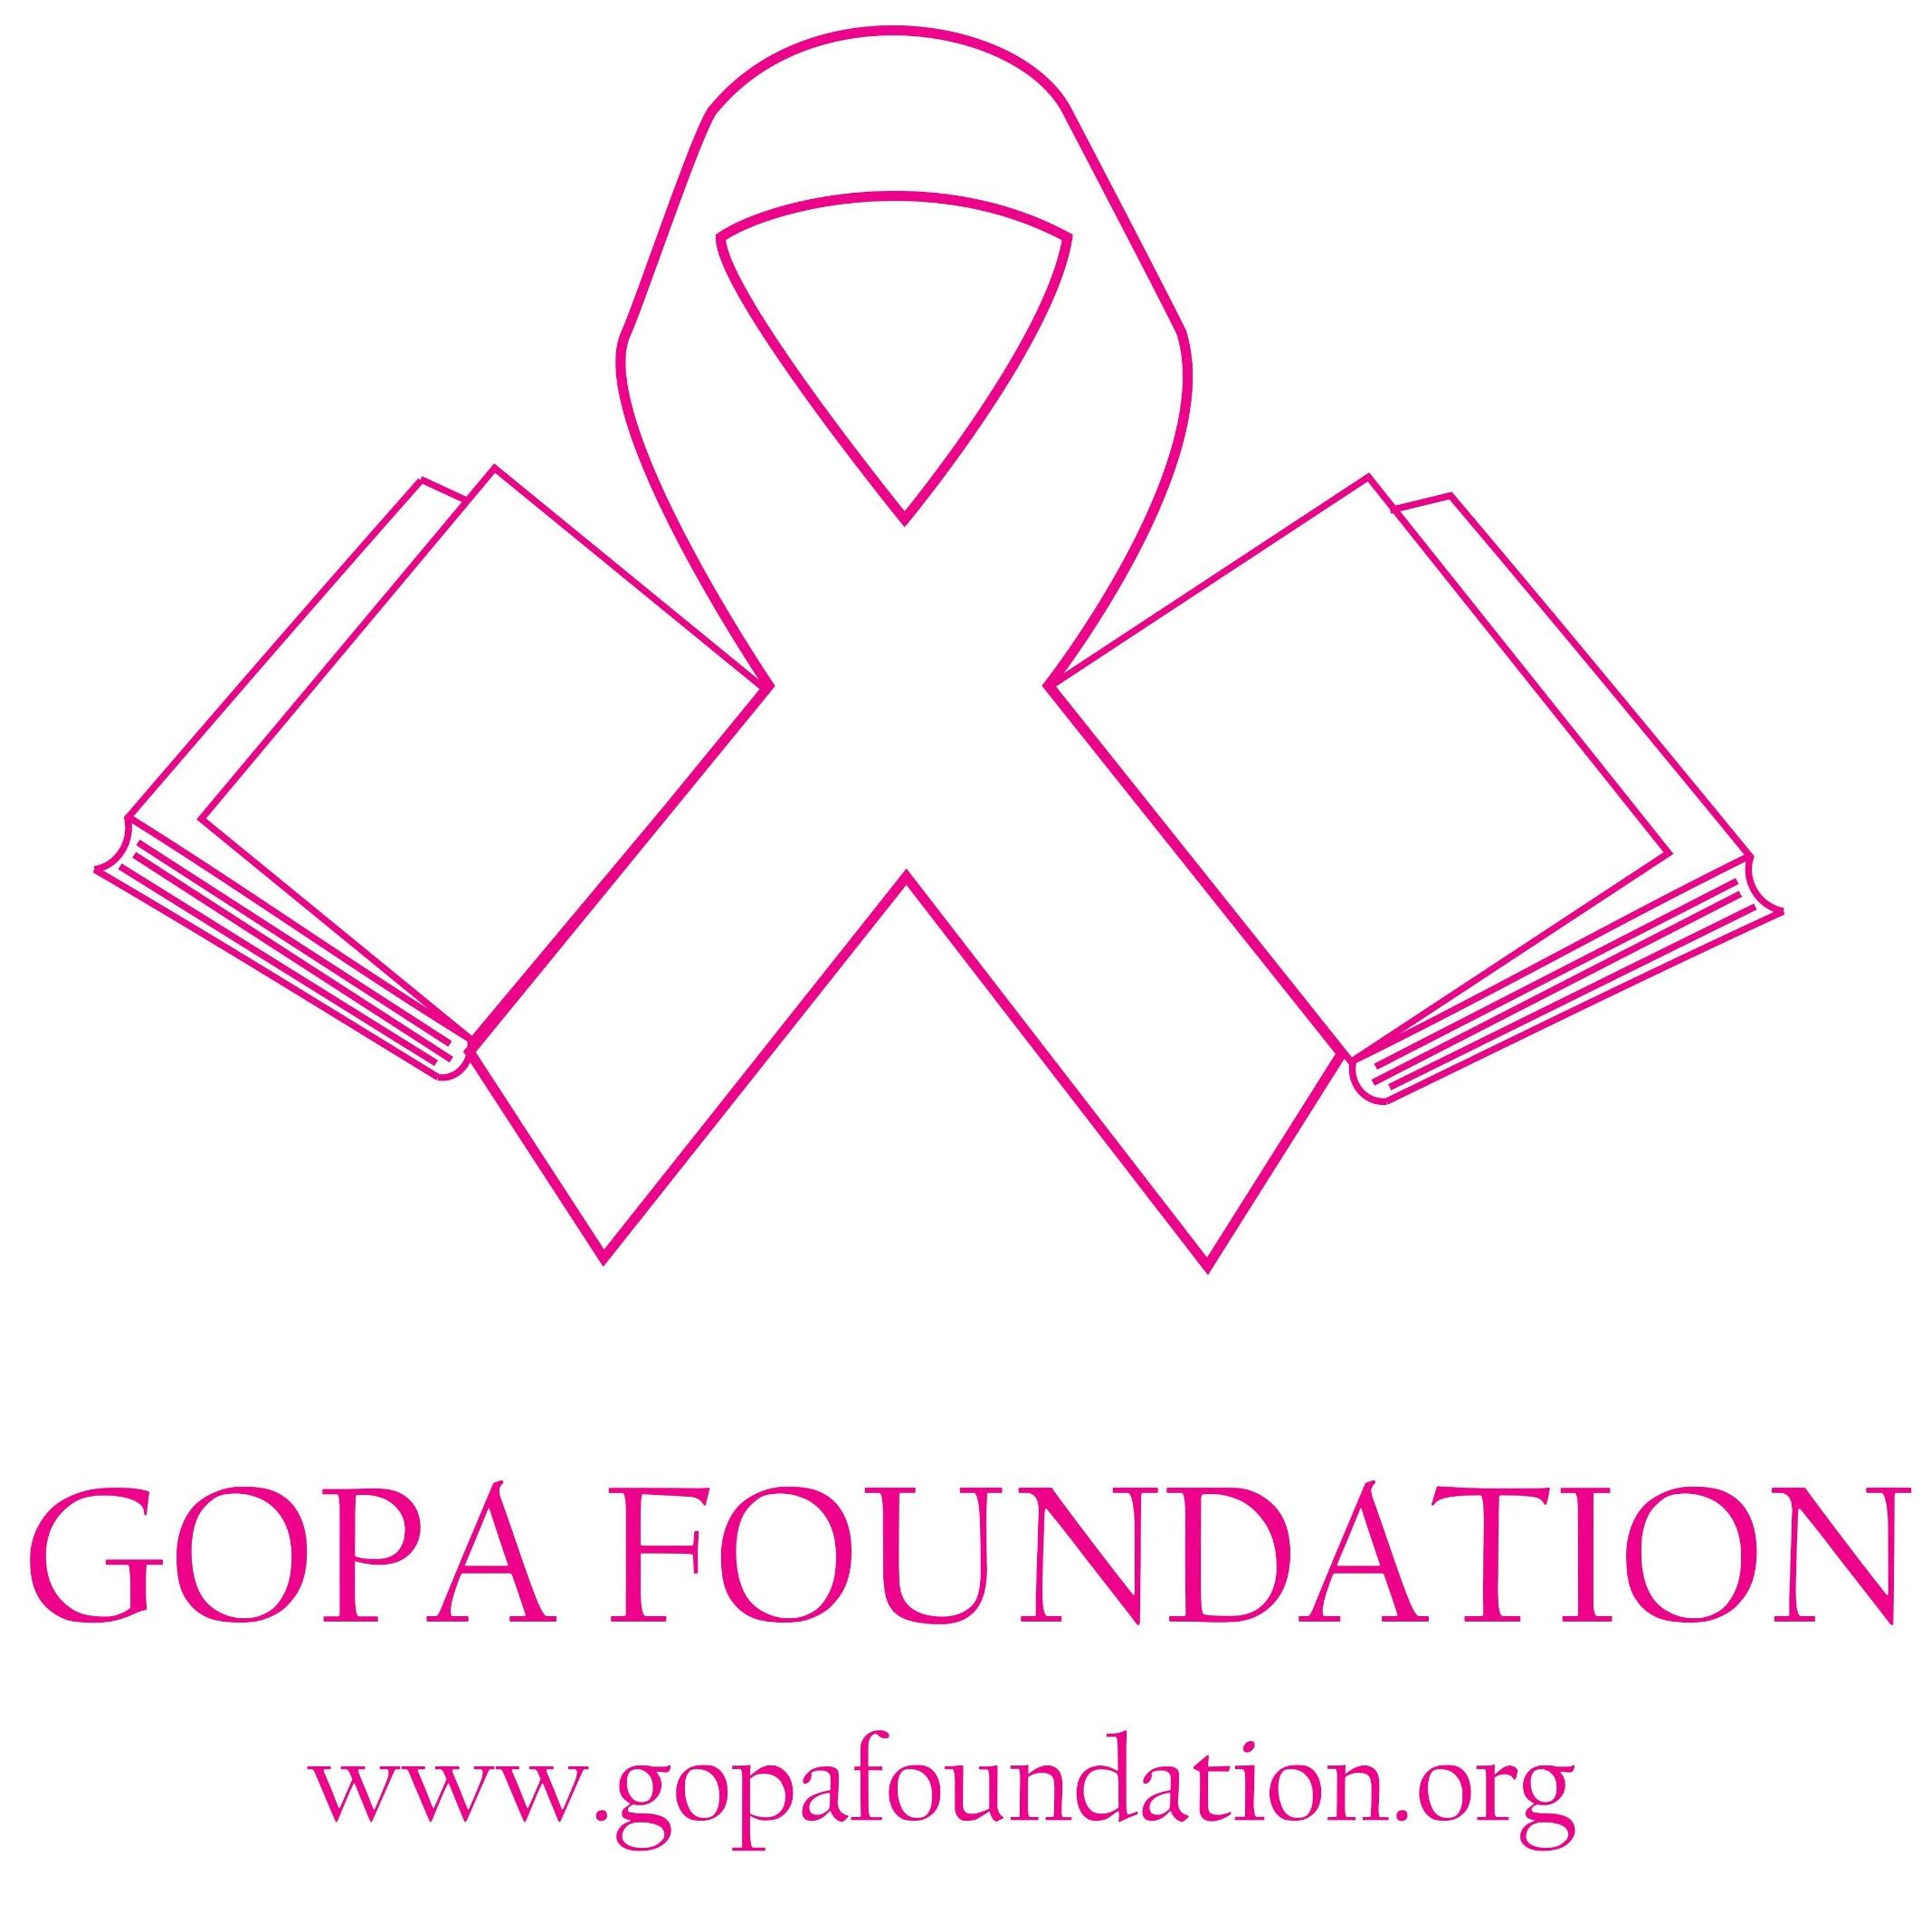 Gopa Foundation